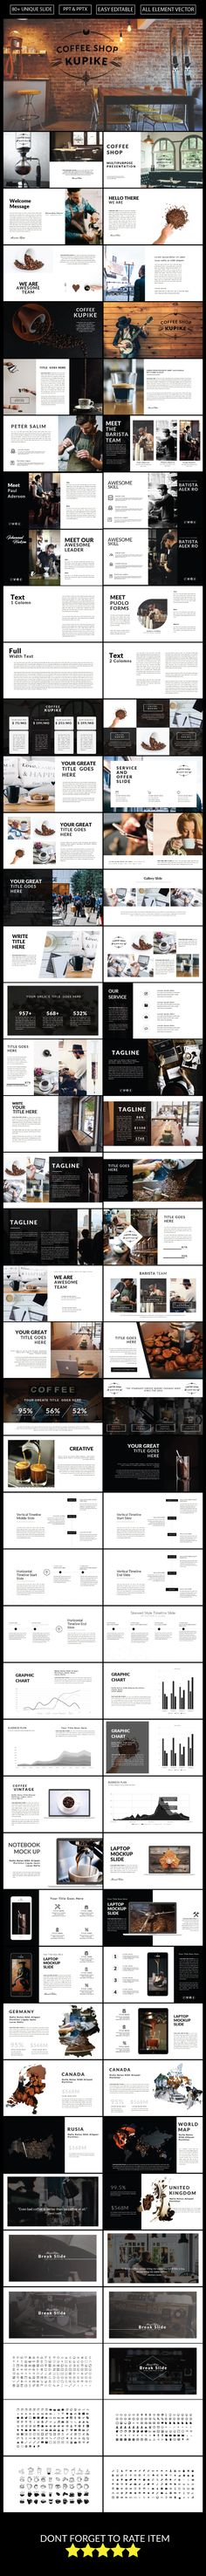 Coffee Kupike Multipurpose Powerpoint by slidercreative Web Design, Slide Design, Book Design, Layout Design, Web Layout, Presentation Deck, Presentation Design Template, Business Presentation, Keynote Design